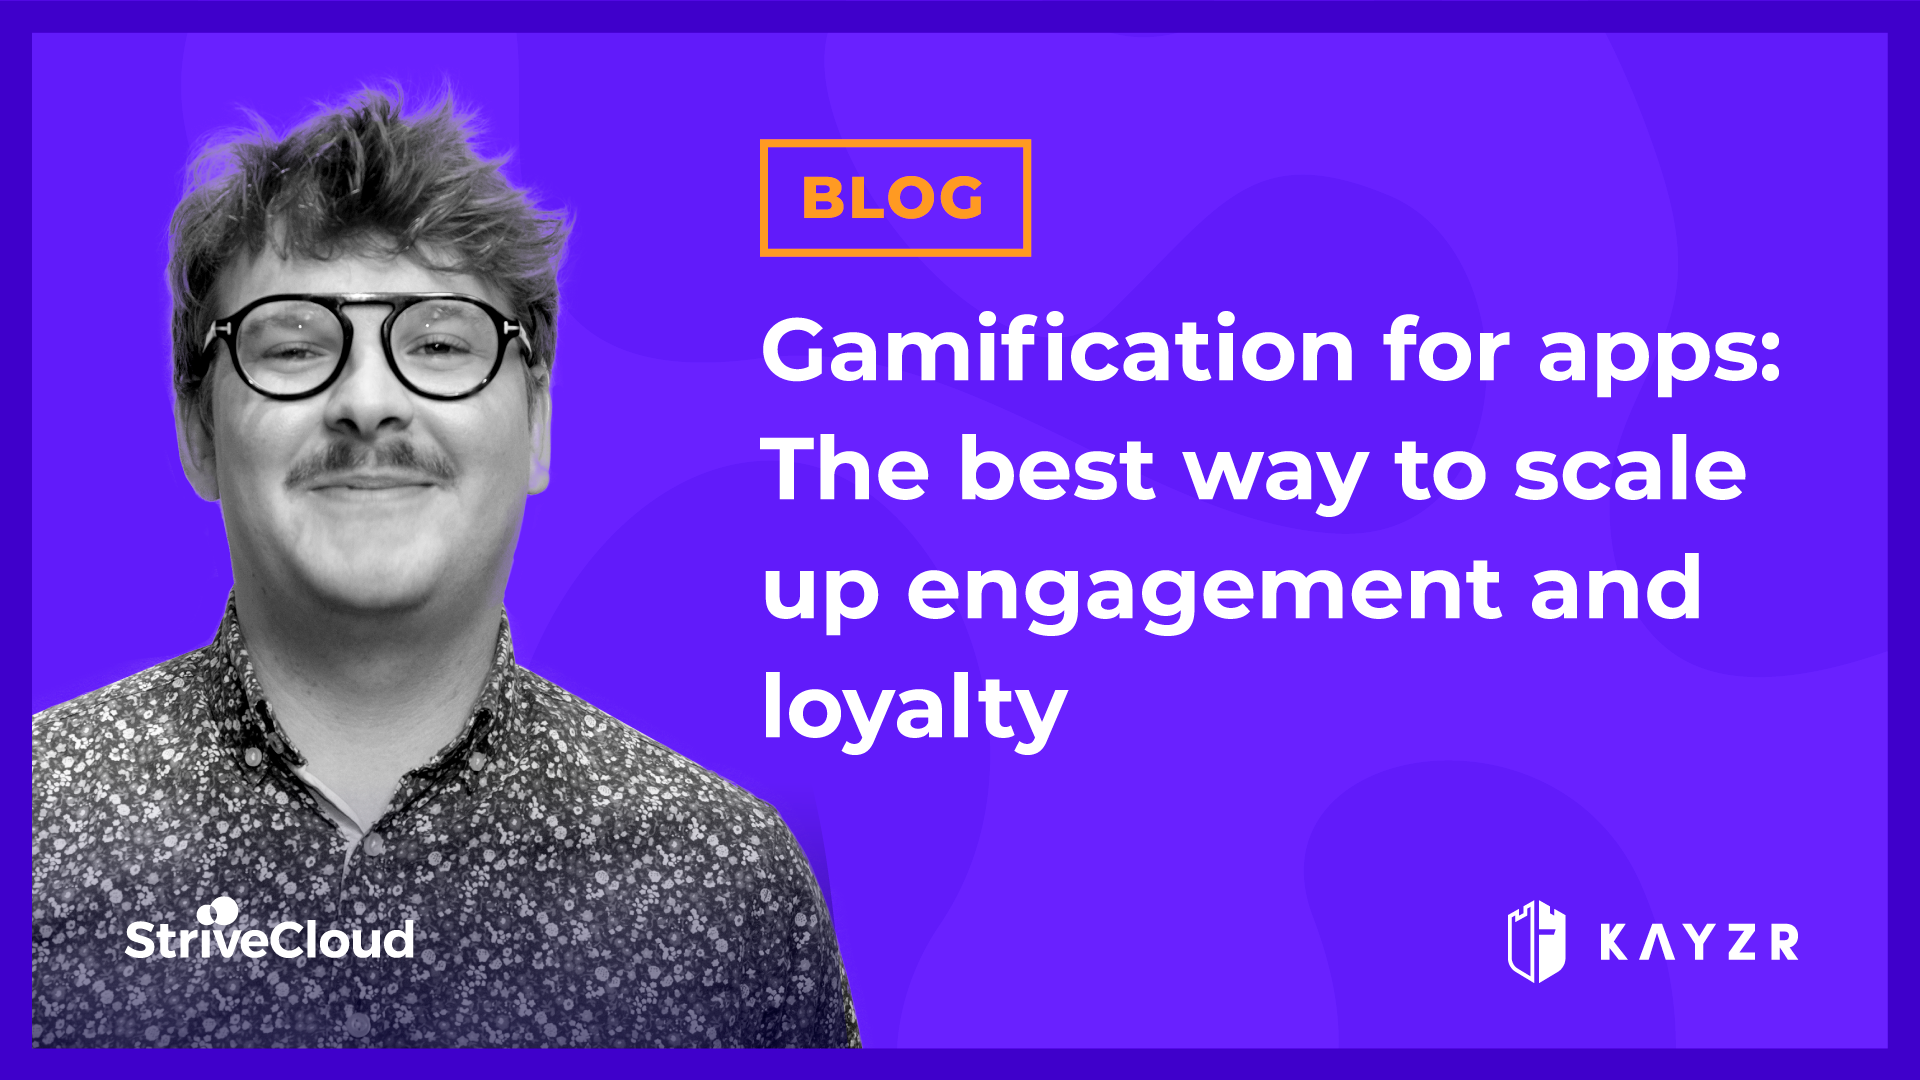 Gamification for apps: The best way to scale up engagement and loyalty